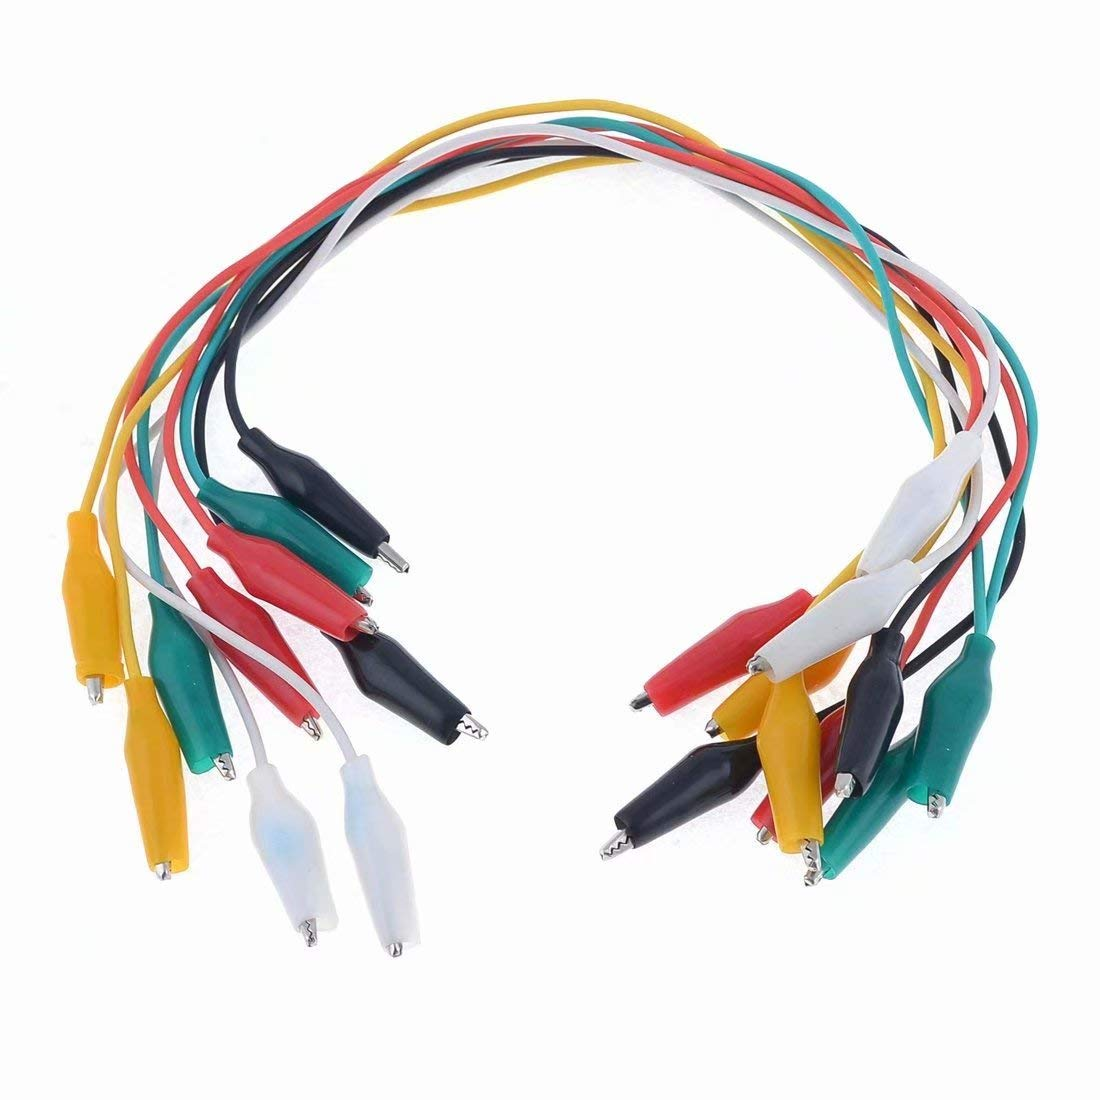 Sandin 10 Pcs Colorful Double Ended Alligator Clips Test Lead Jumper Wires